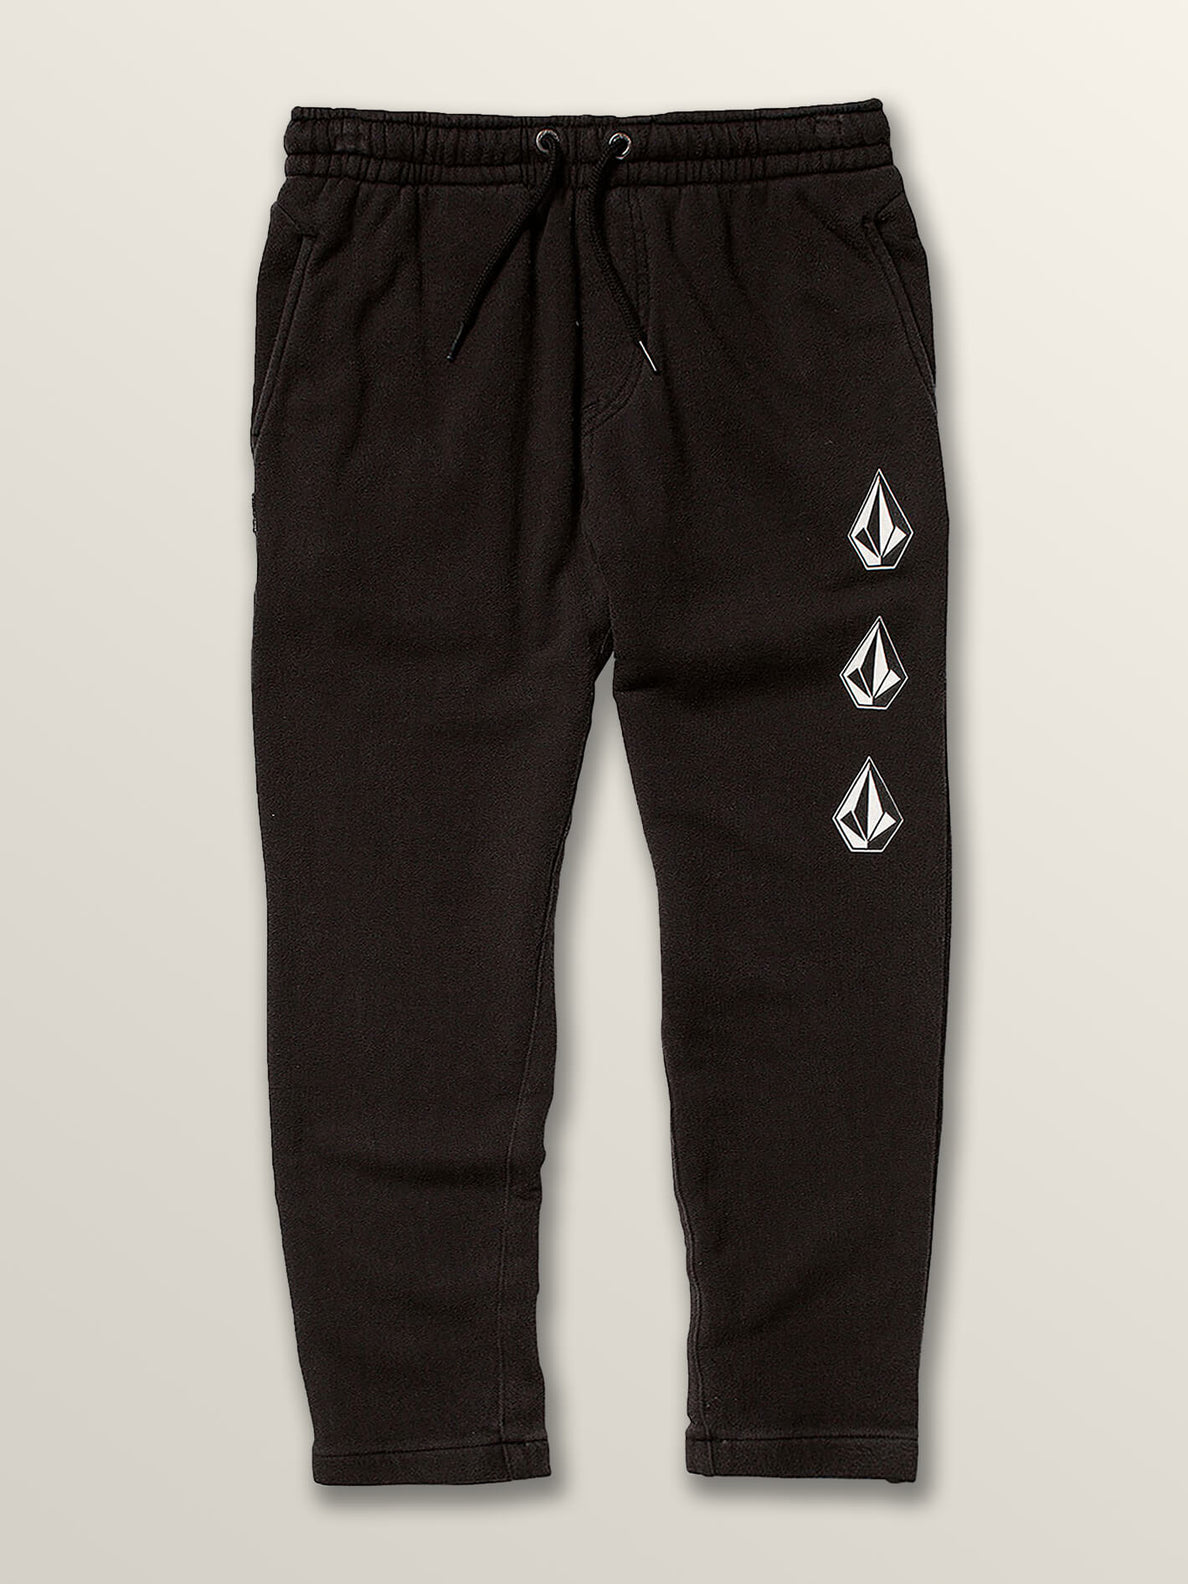 Little Boys Deadly Stones Pants In Black, Front View